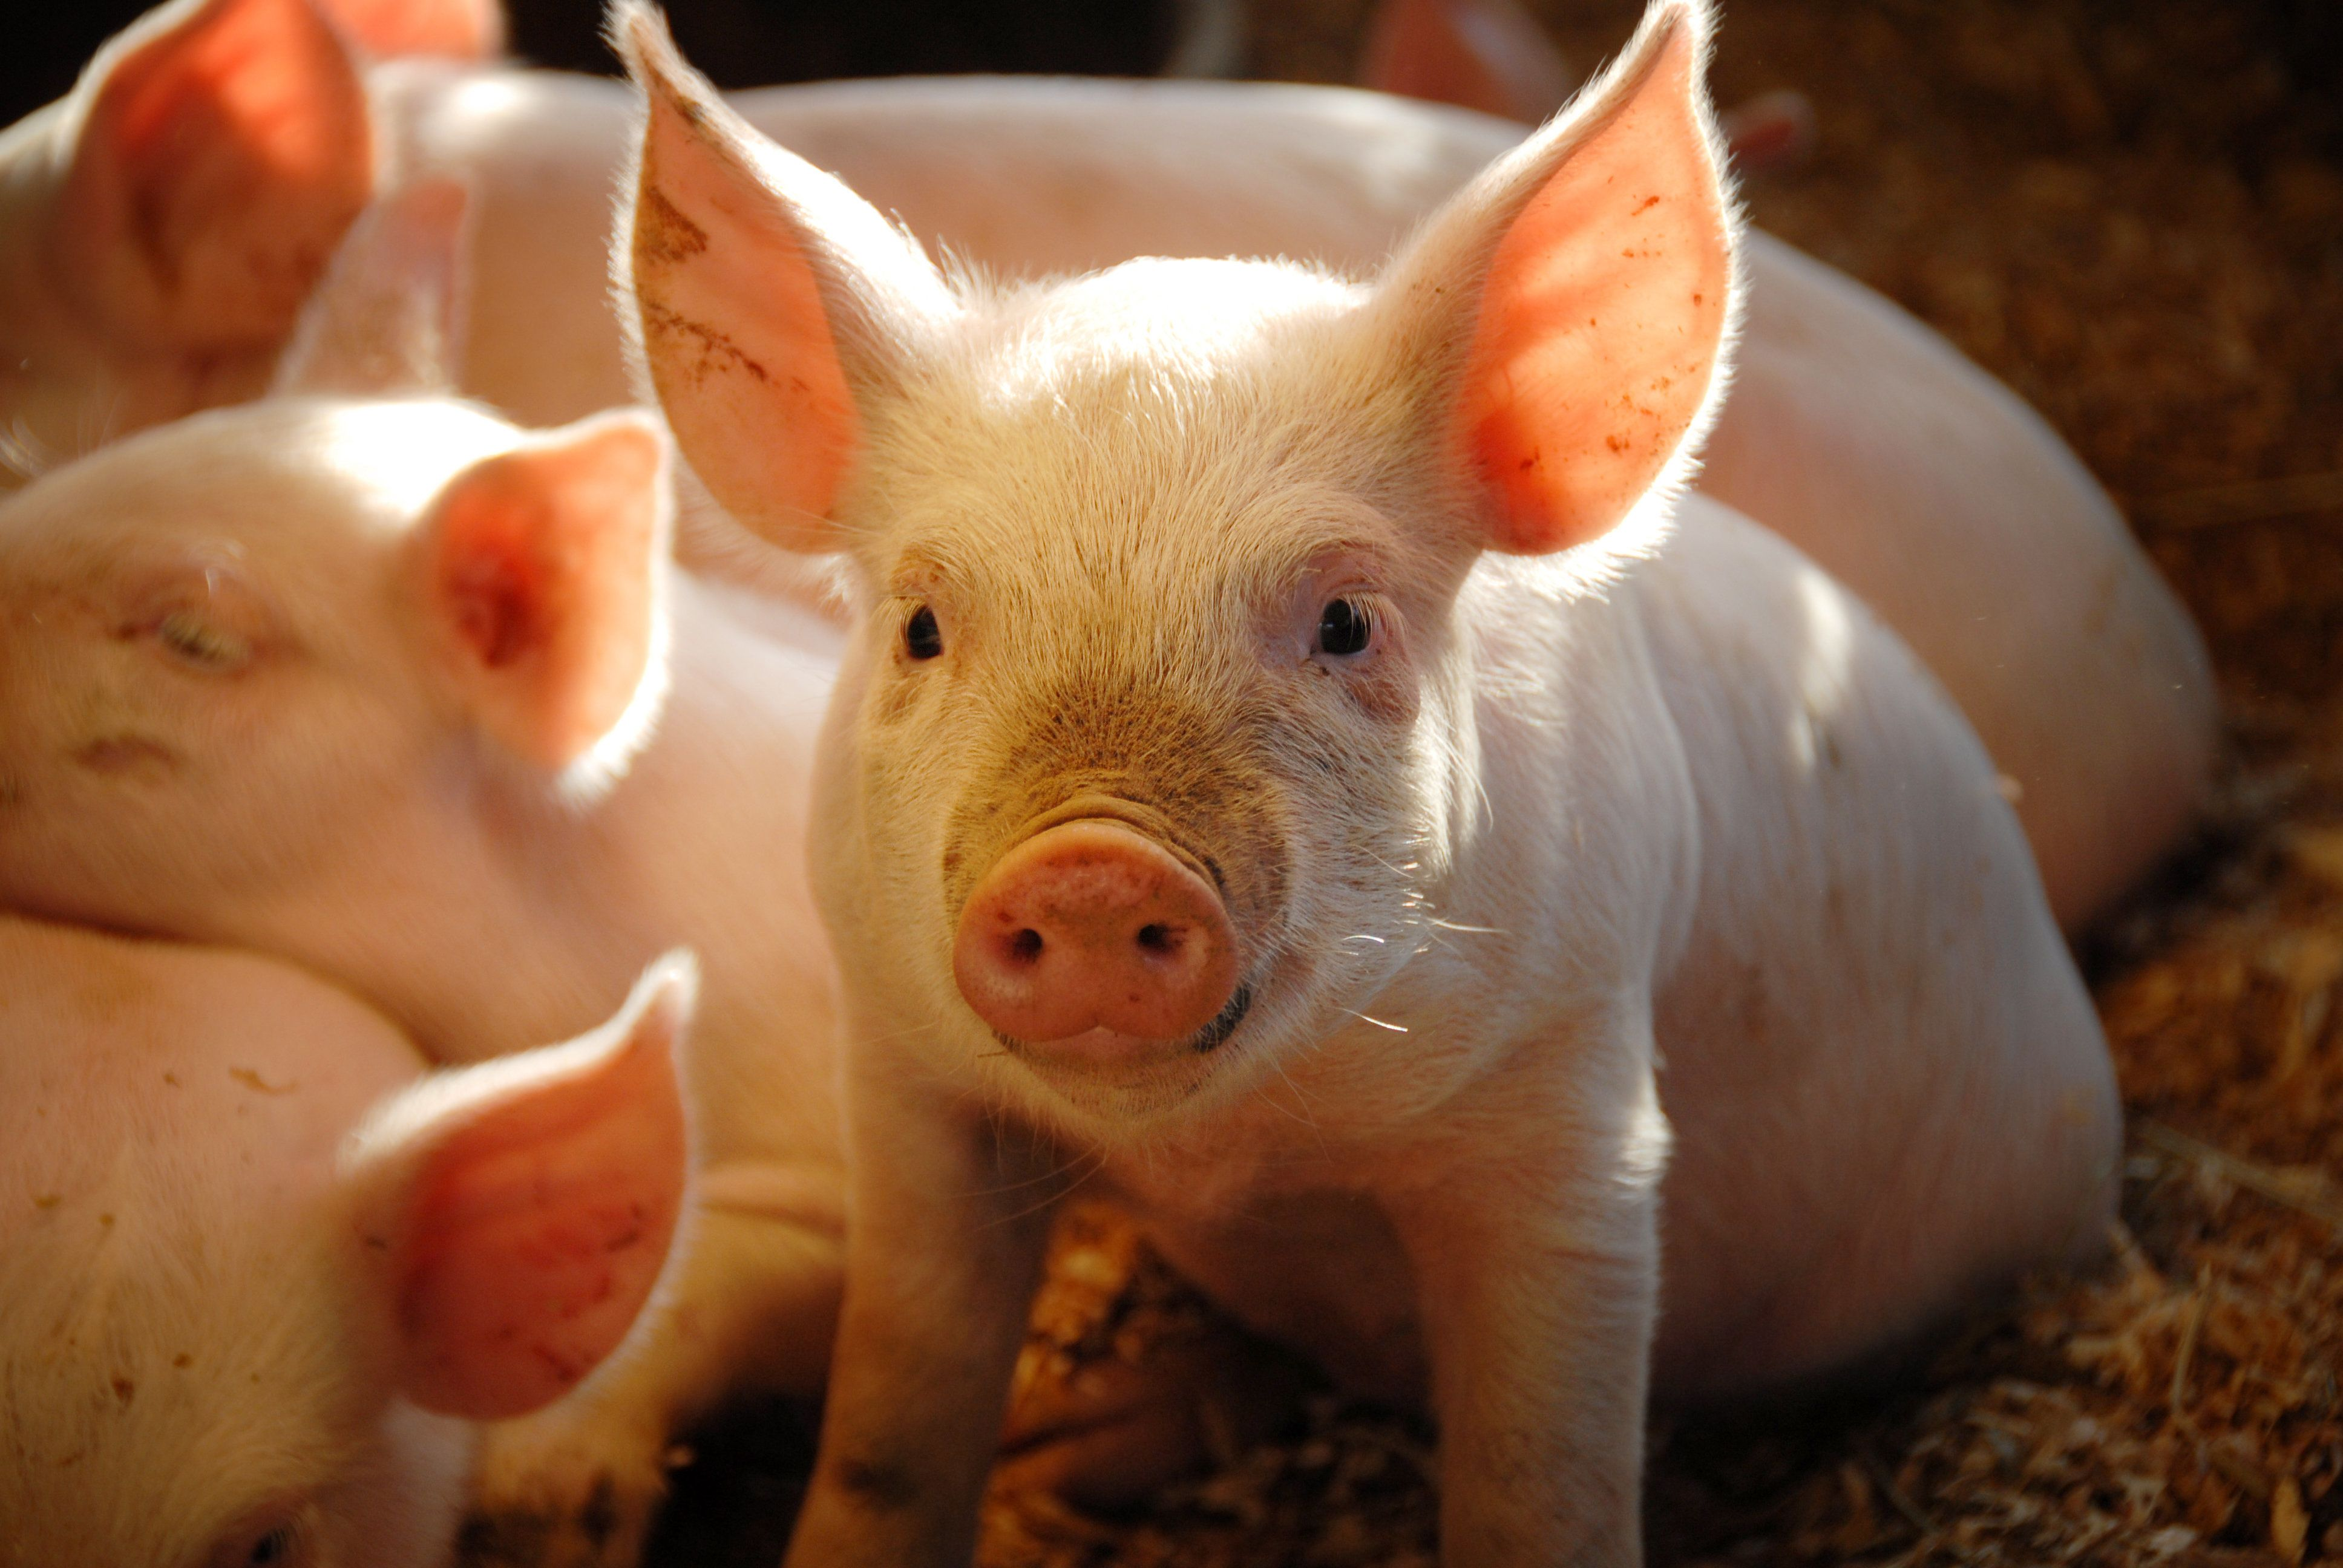 Scientists Say In The Future We Could All Be Getting Pig